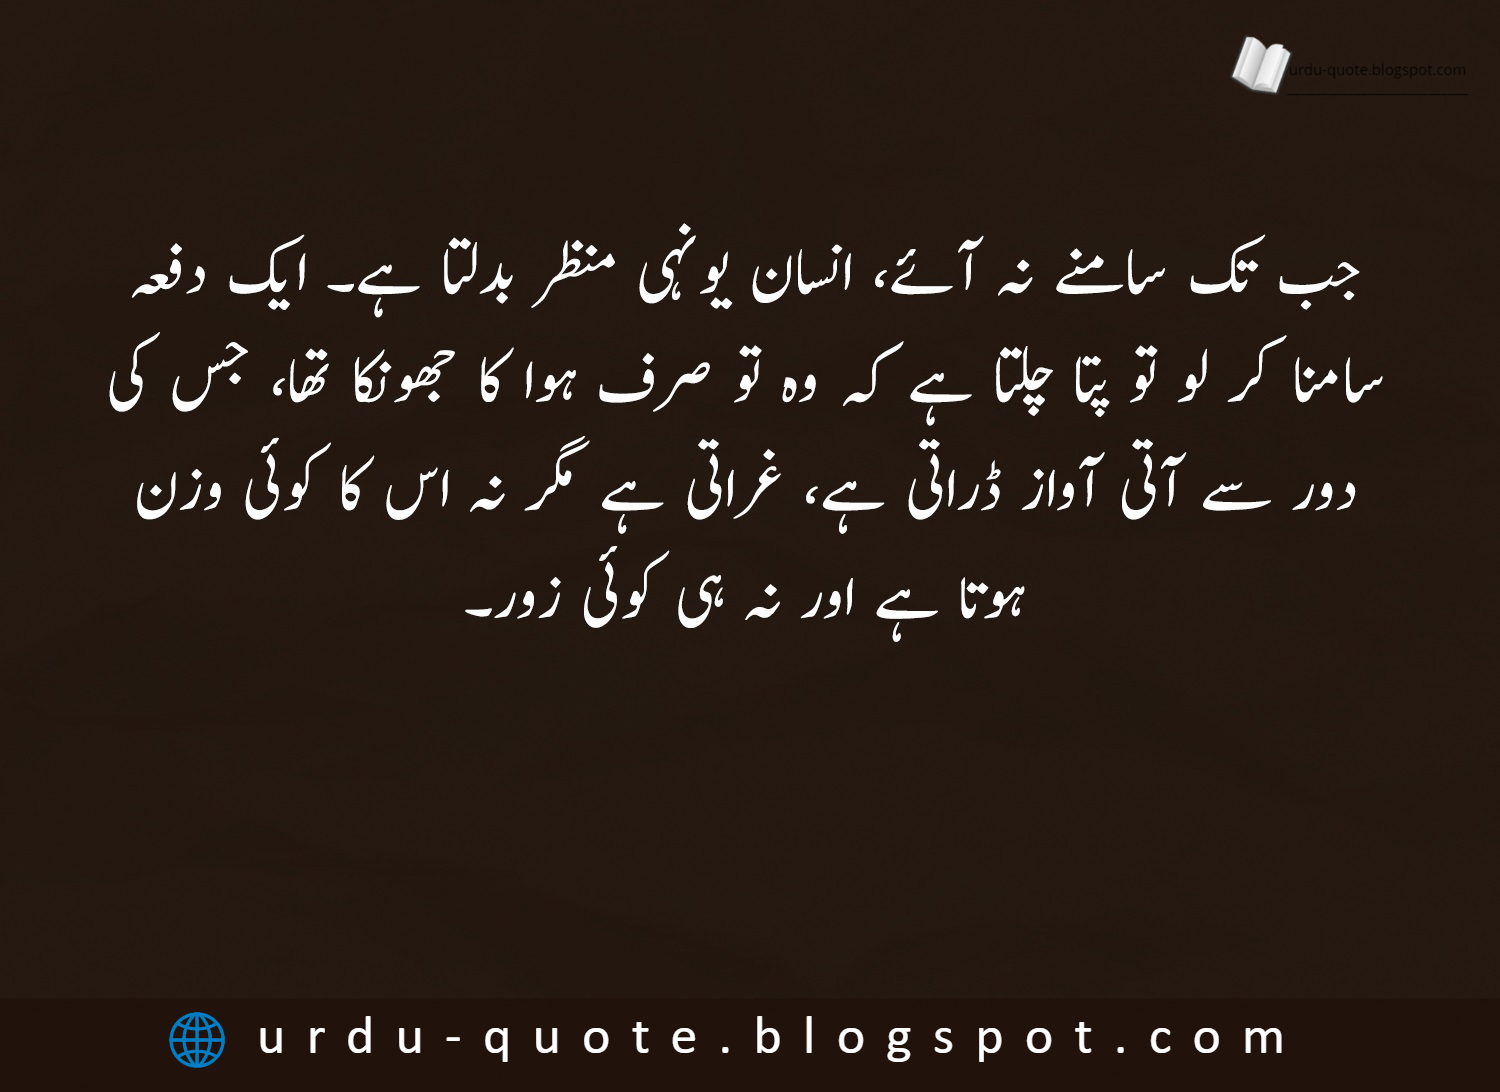 urdu quotes best urdu quotes famous urdu quotes urdu quotations